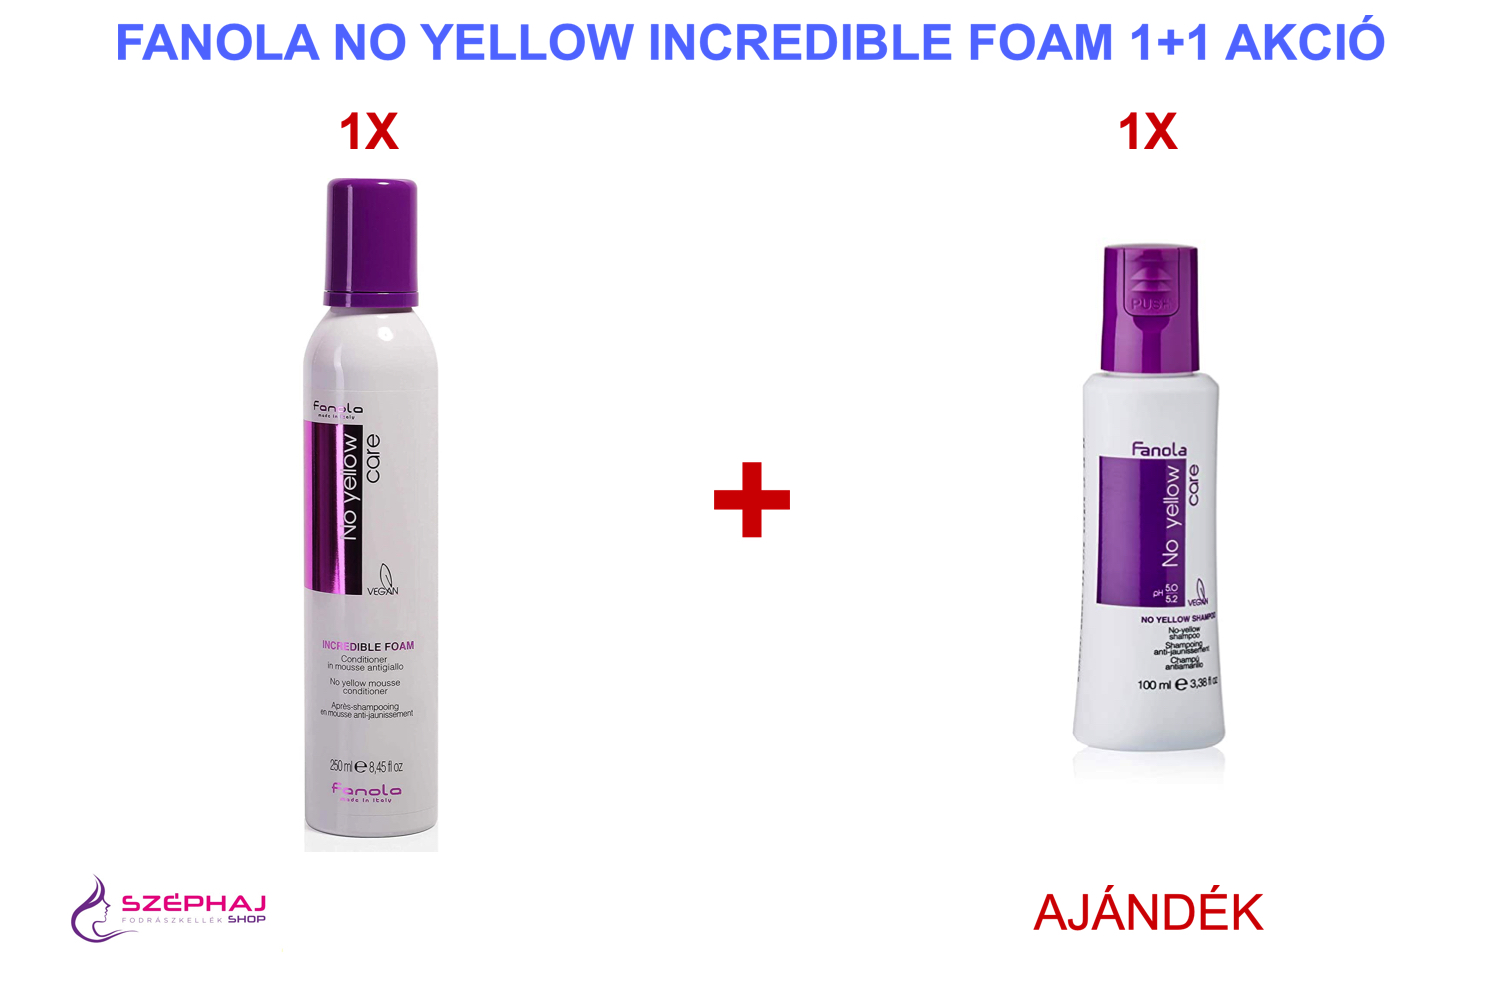 FANOLA No Yellow Care Incredible Foam 250 ml 1 + 1 AKCIÓ